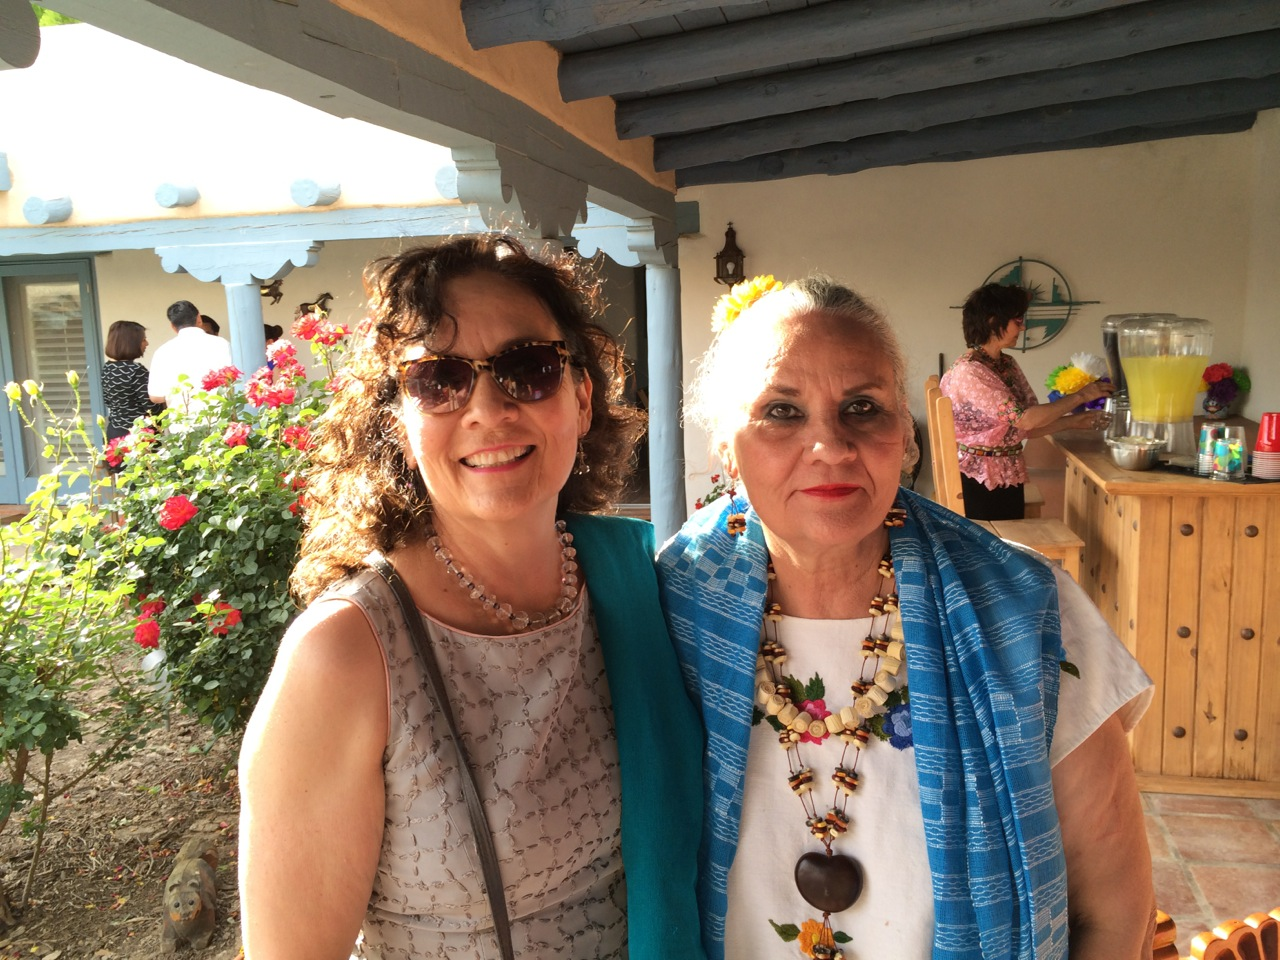 The Chávez sisters—Denise and Margo